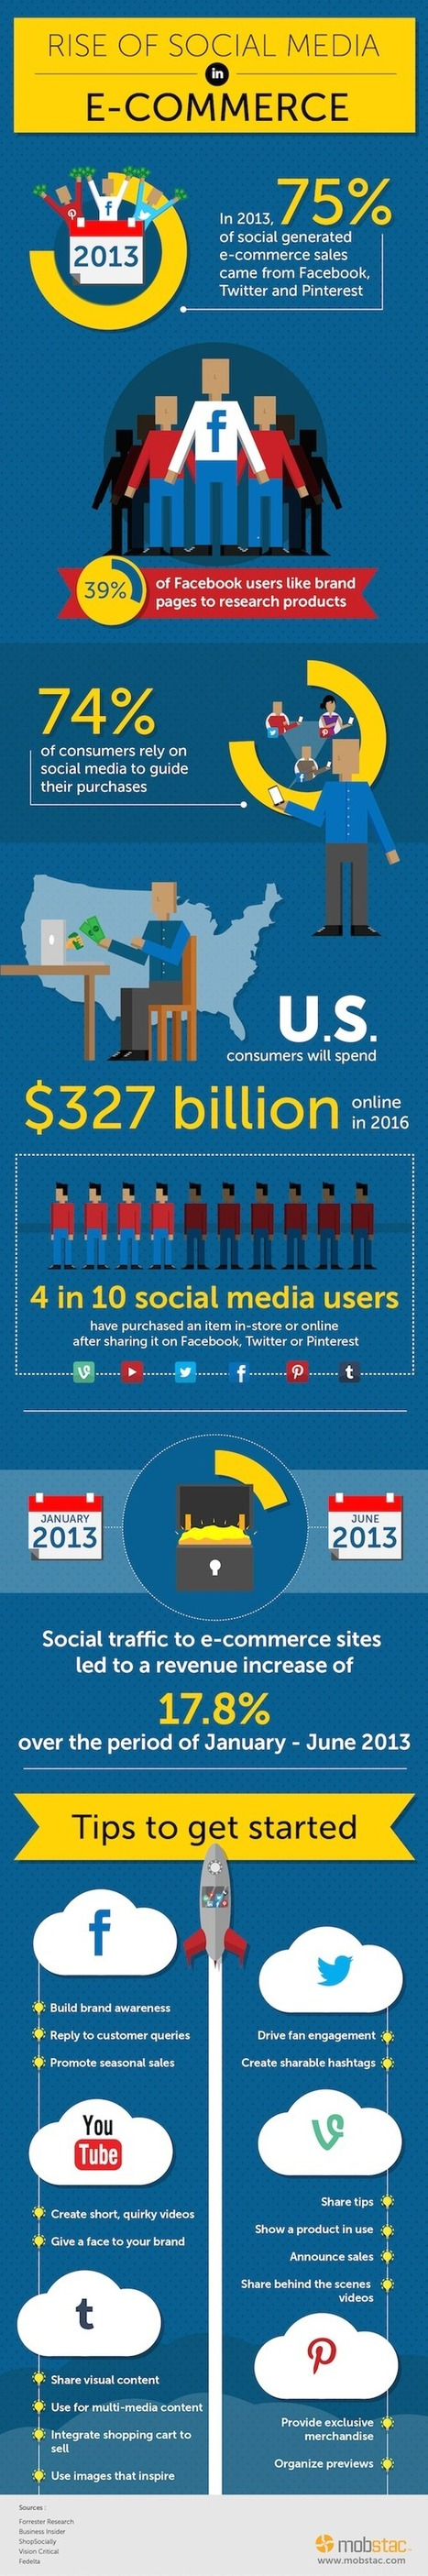 Promote eCommerce Business with Social Media | Small Business and Startup | Scoop.it